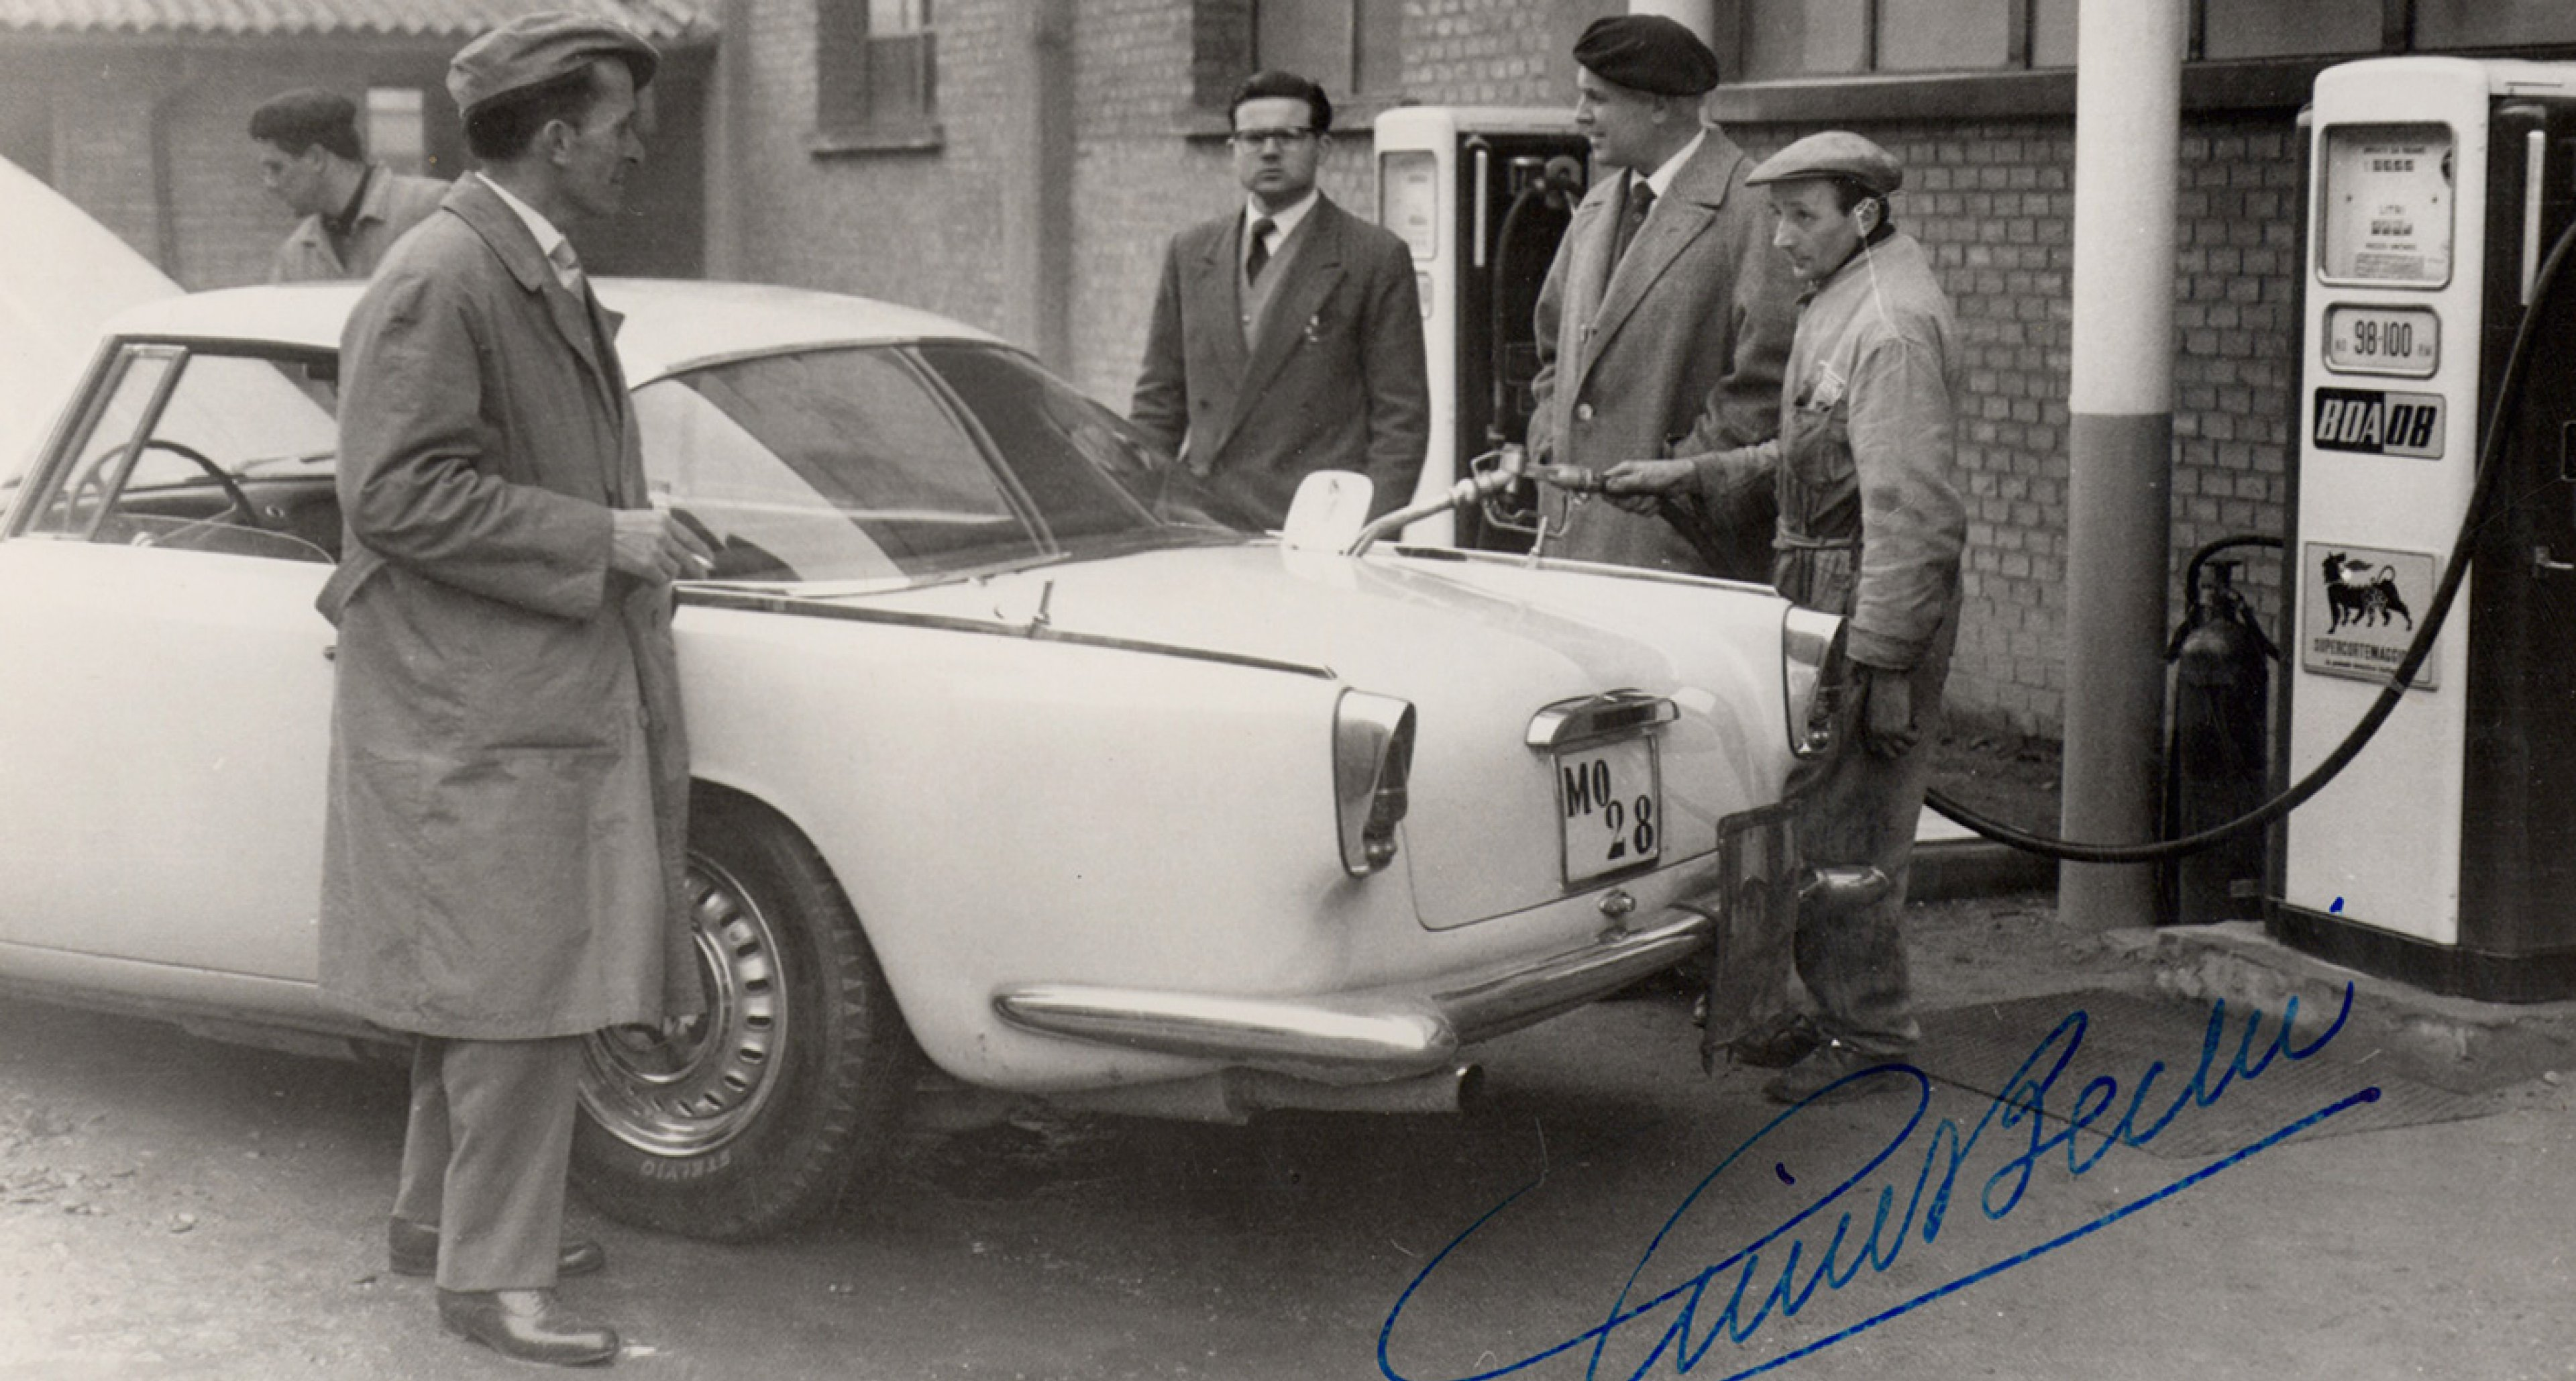 The delivery of Gino Bechi's 3500 GT